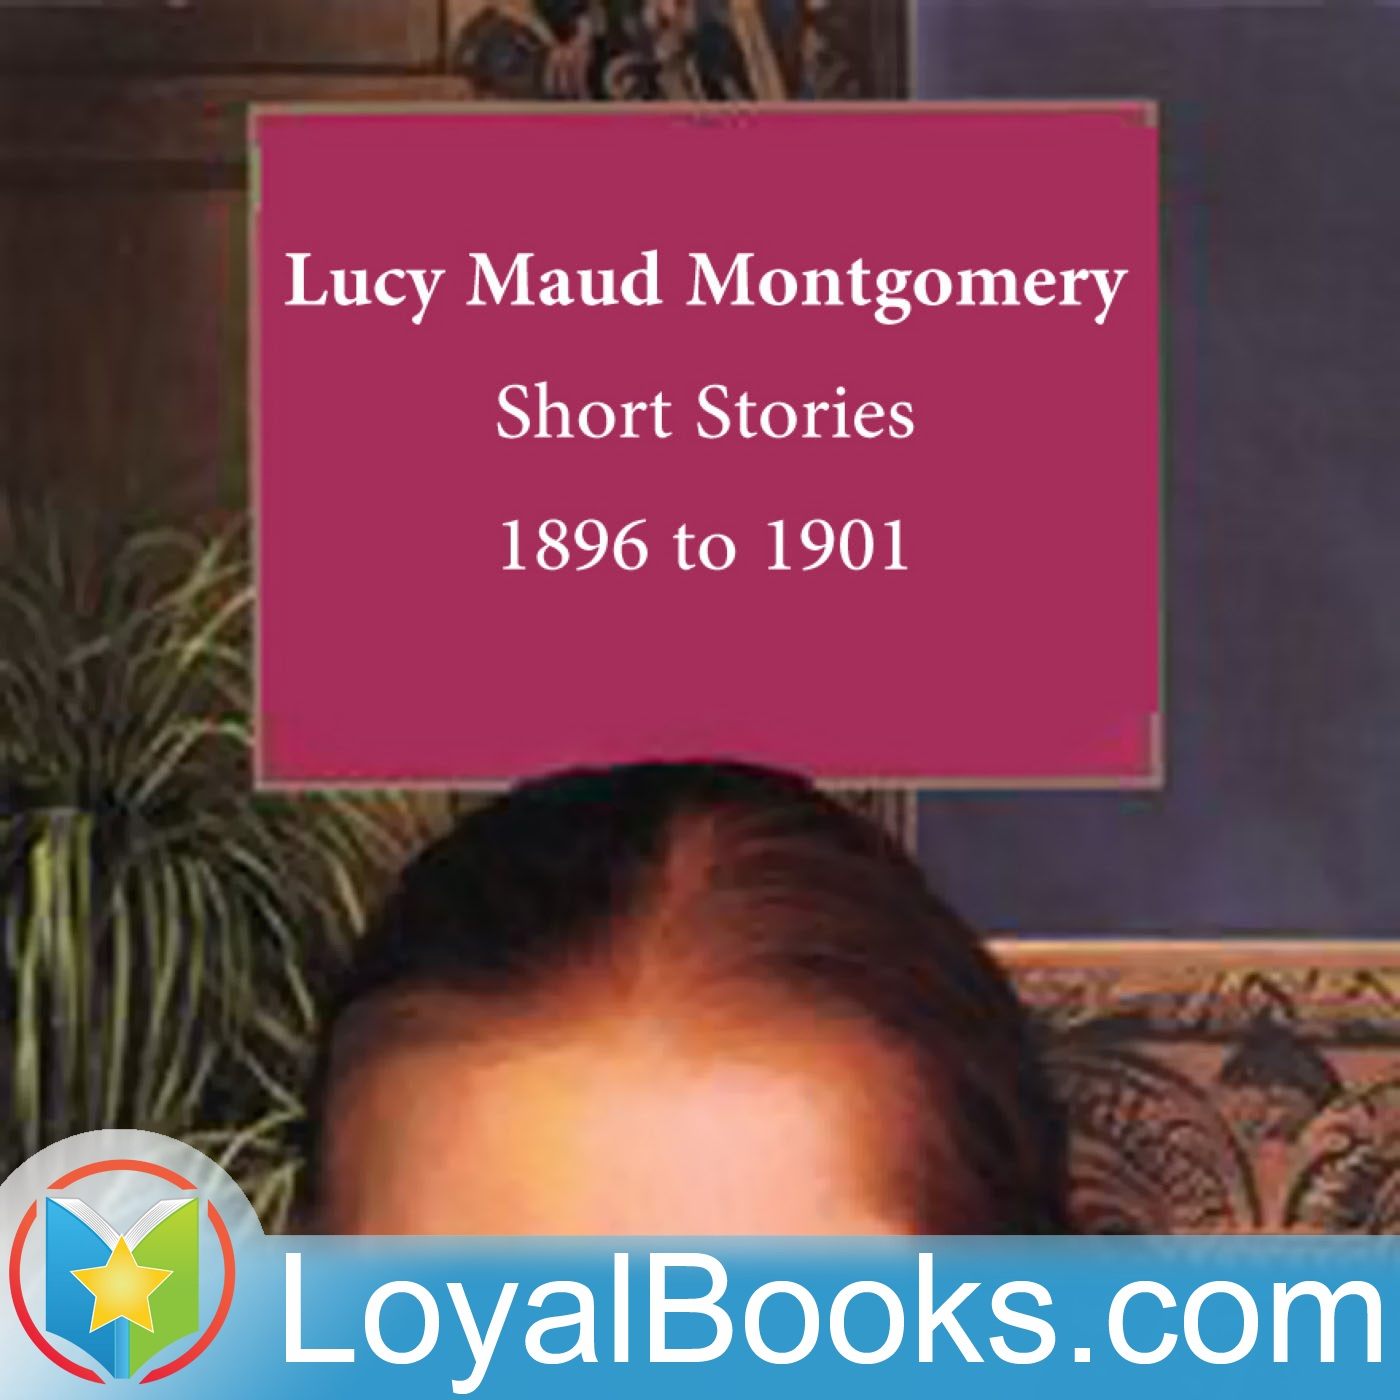 <![CDATA[Lucy Maud Montgomery Short Stories, 1896 to 1901 by Lucy Maud Montgomery]]>